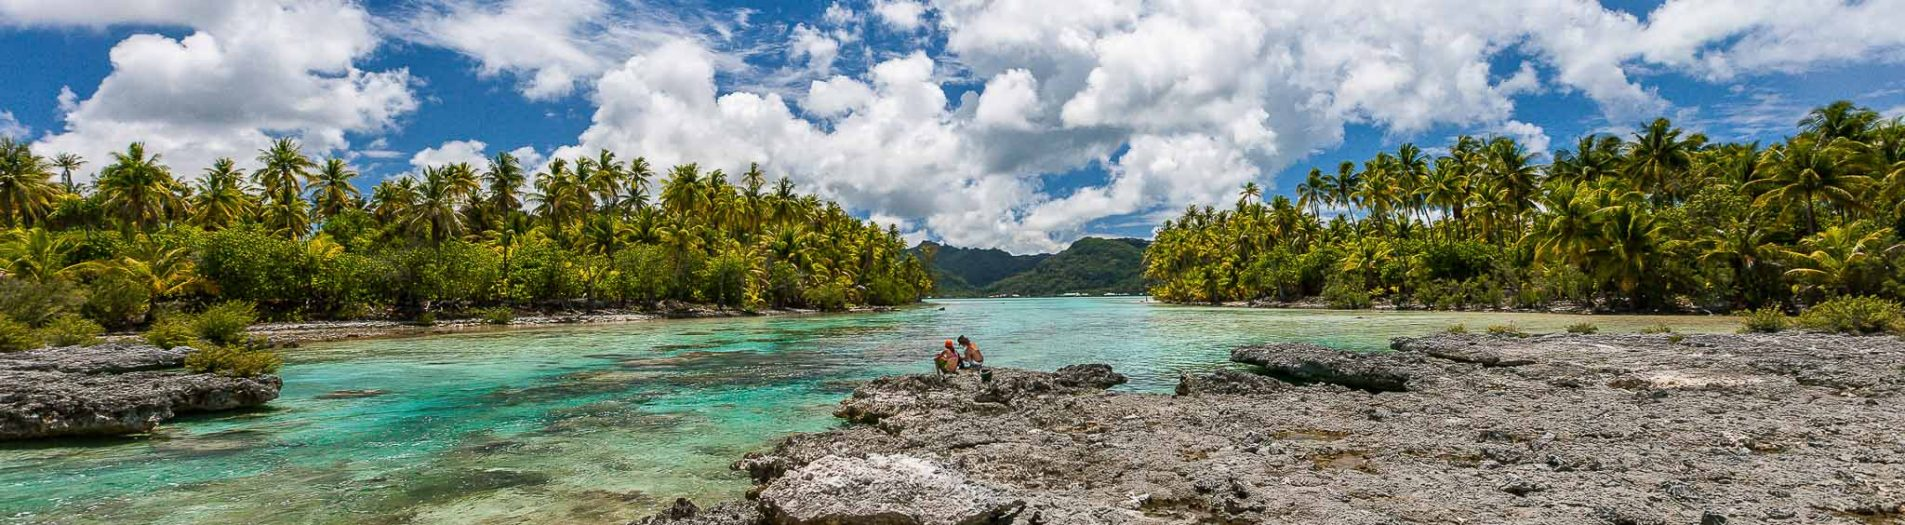 Travel | Raiatea, the sacred island of Polynesia